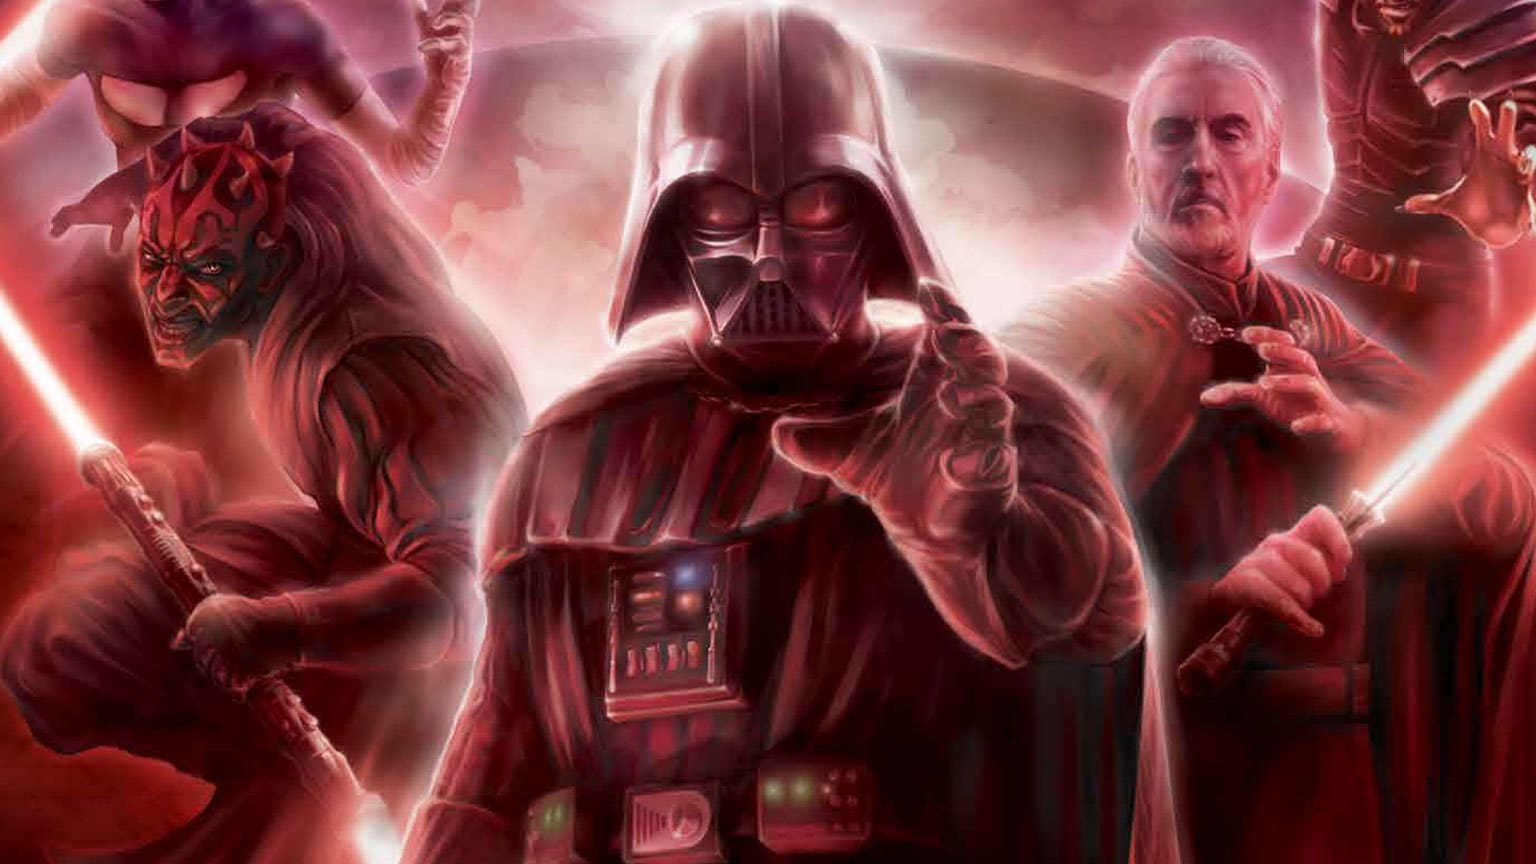 Uncover Mysteries of the Dark Side in The Secrets of the Sith – Exclusive Reveal